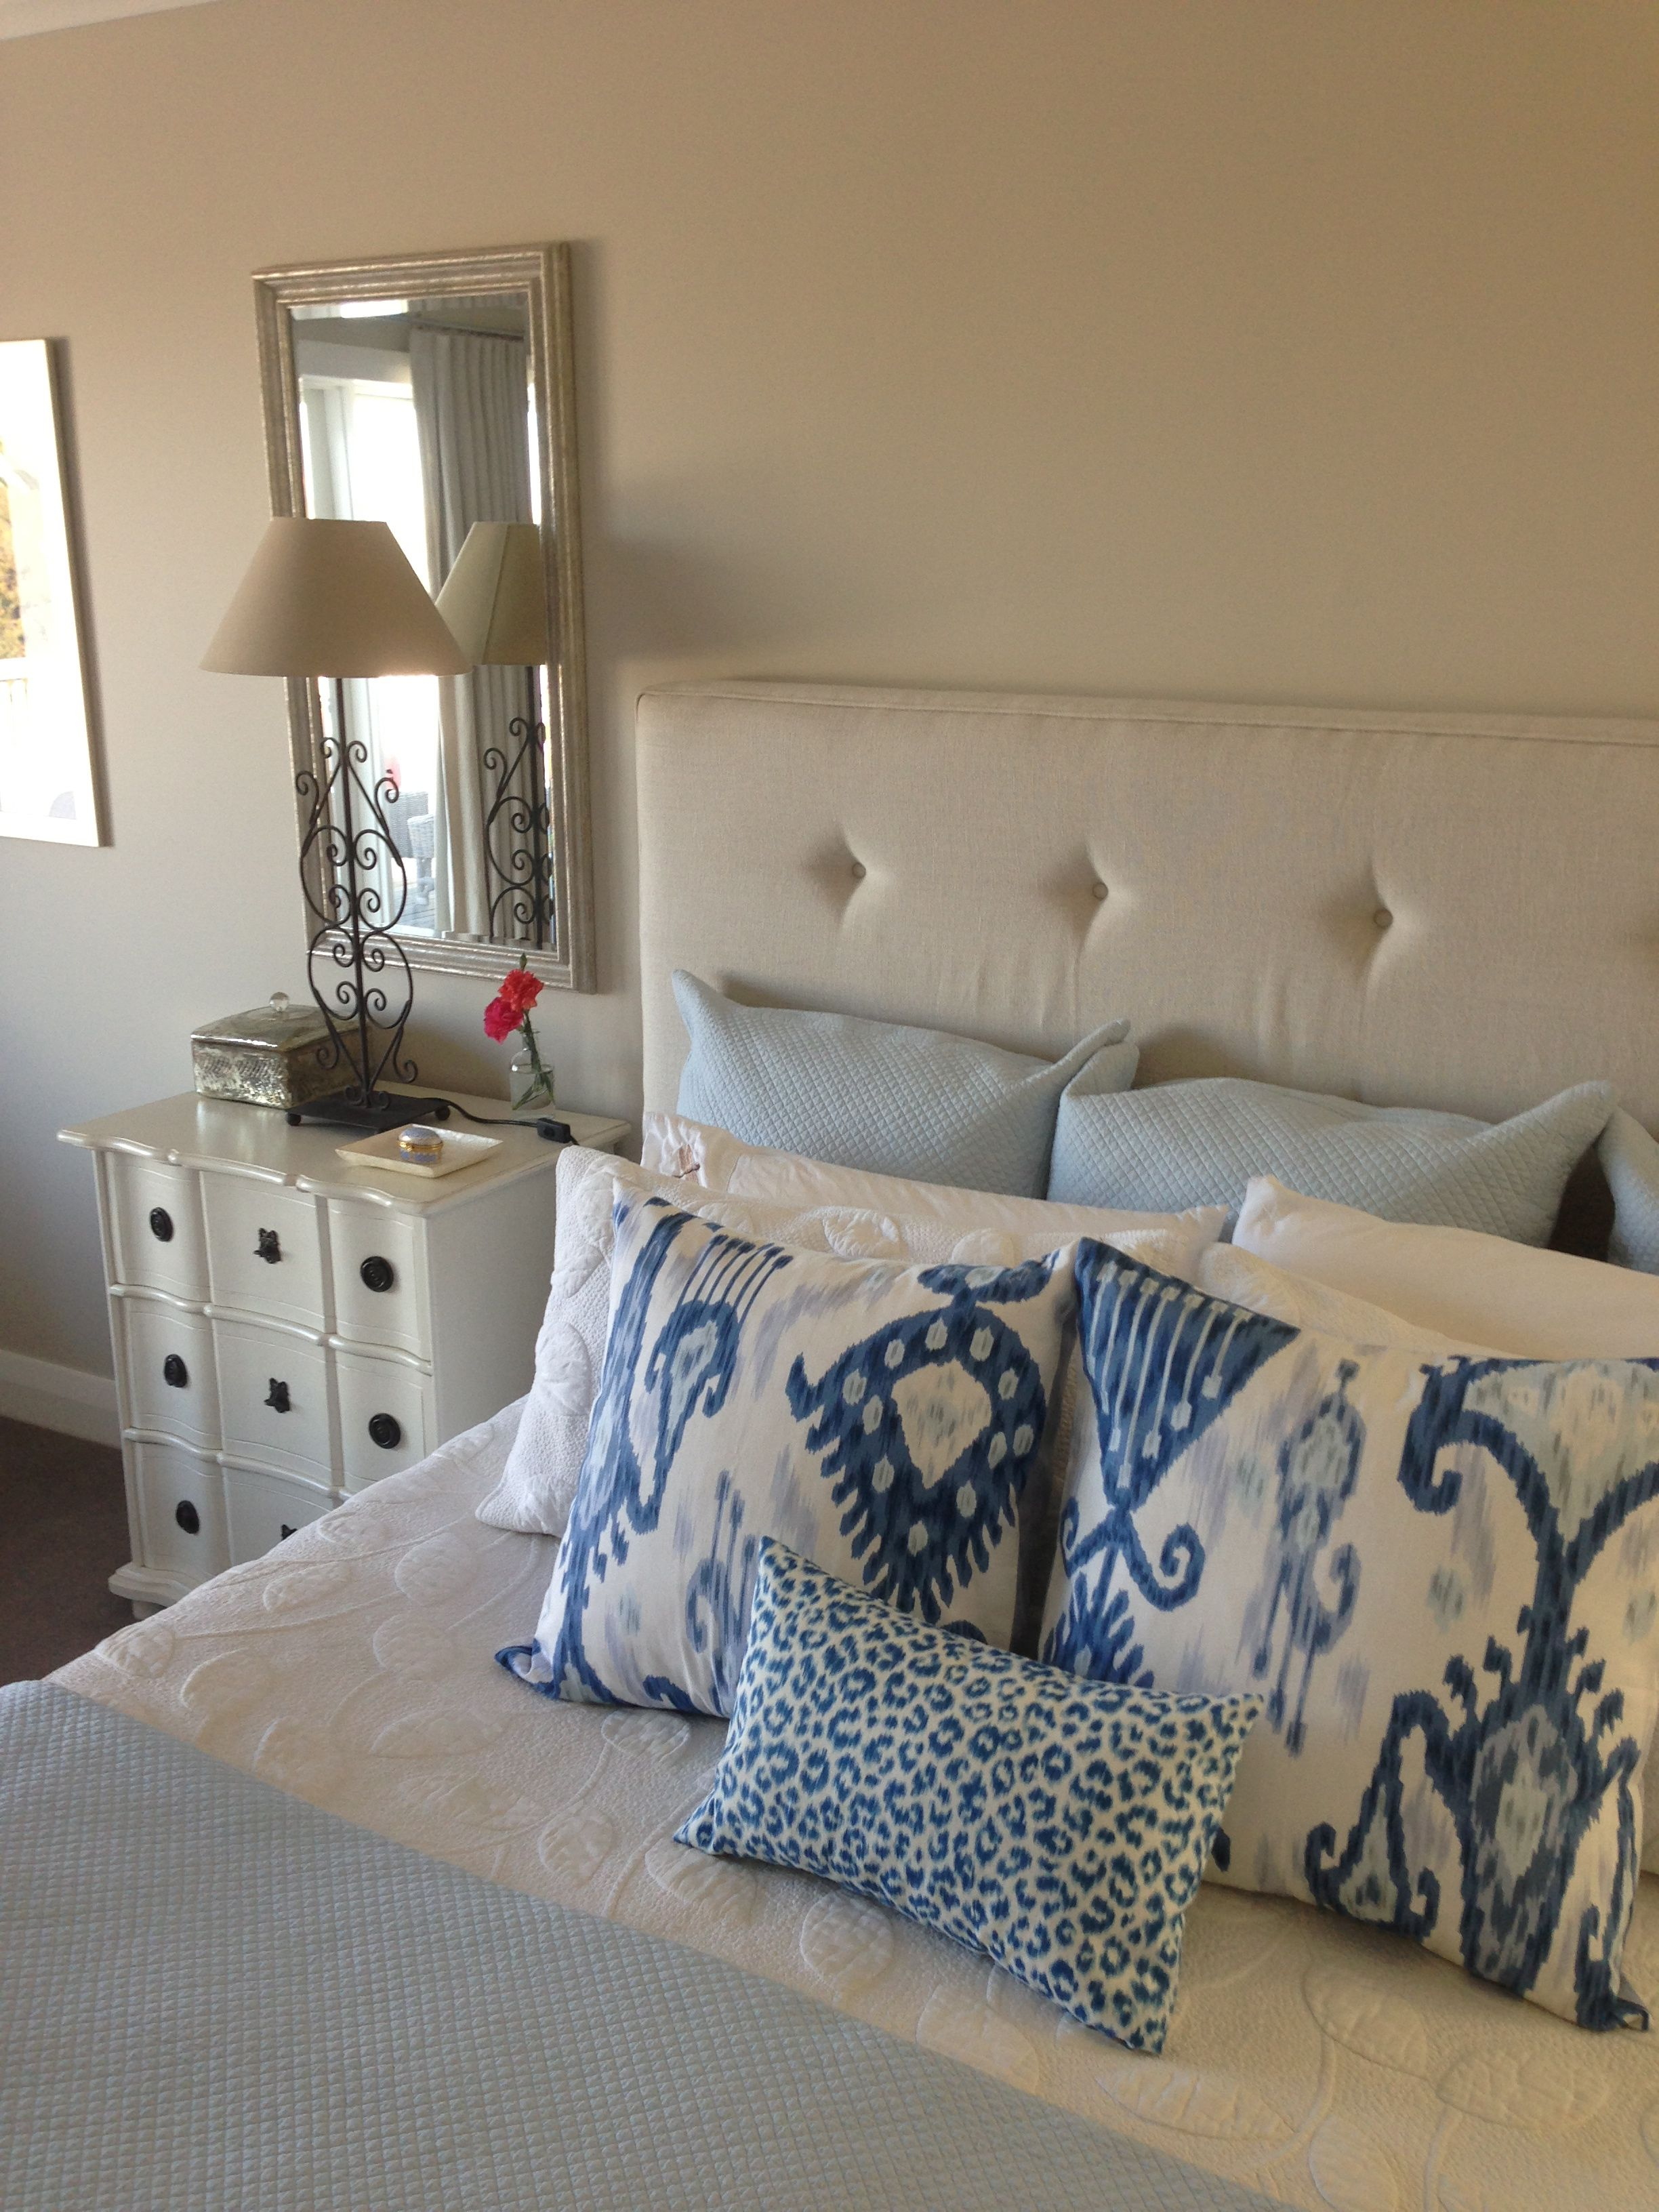 Upholstered Bedhead In Belgium Linen With Ikat Cushions And White Quilt By Ornella Botter Interiors